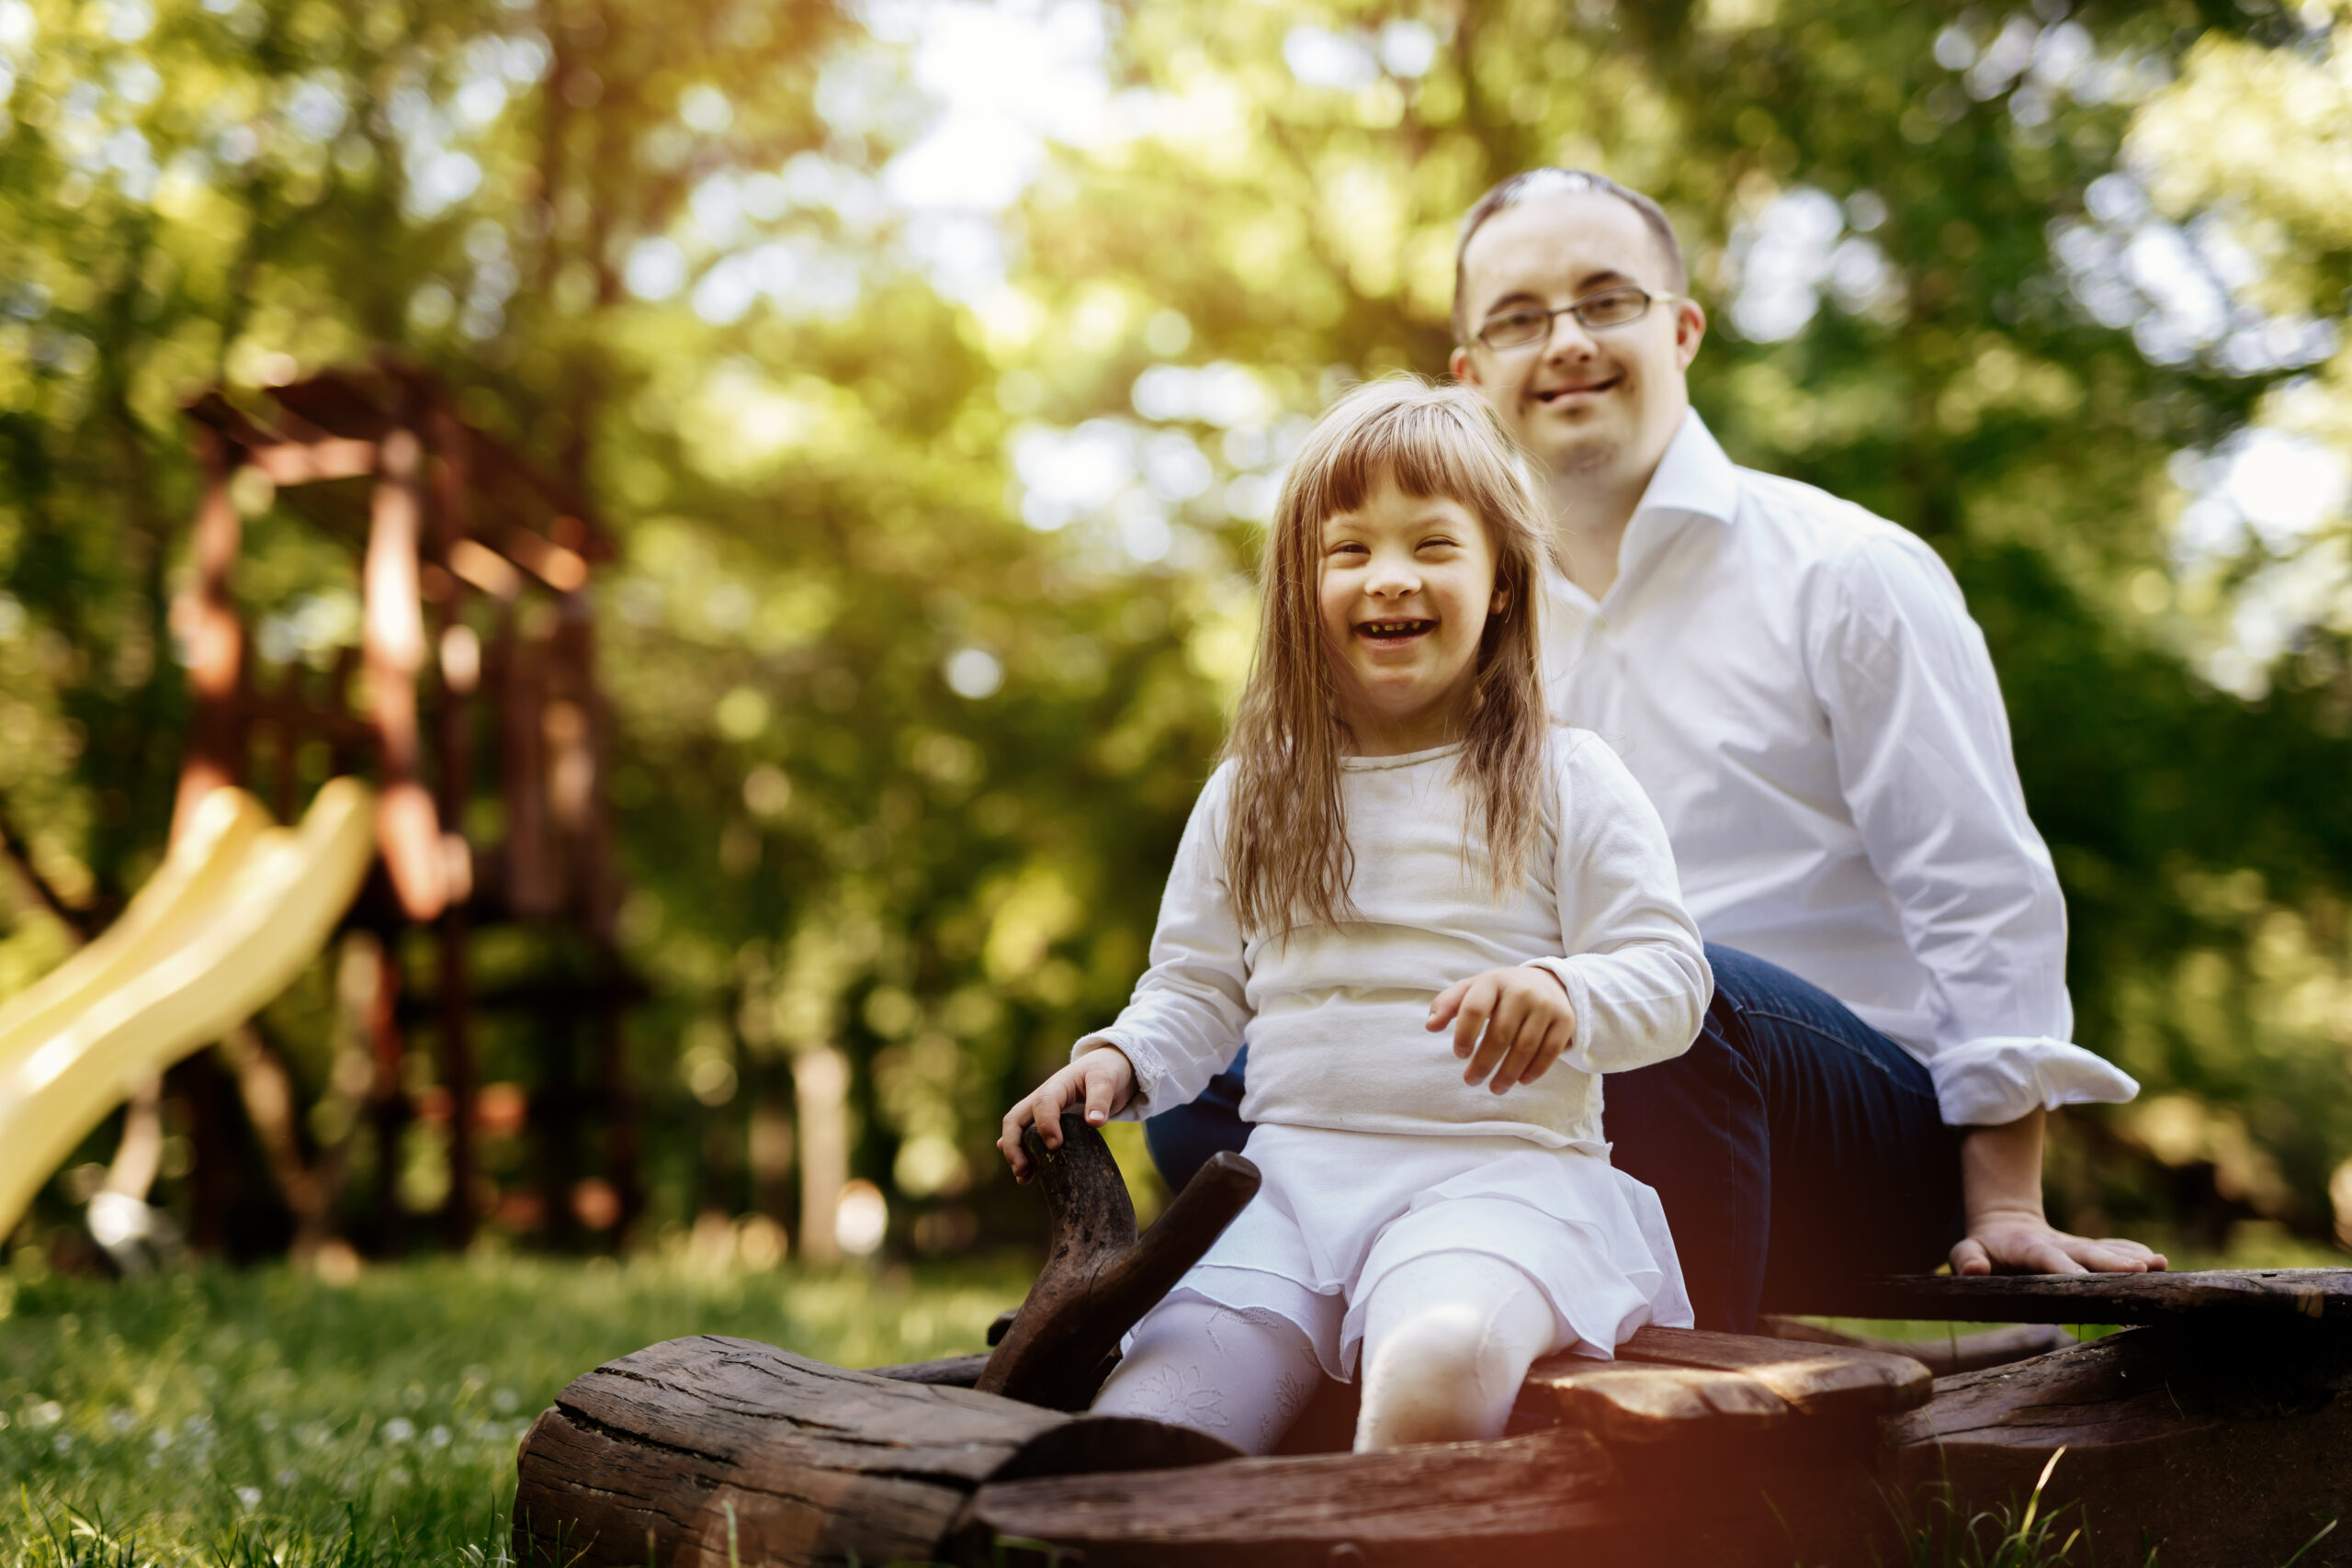 people-with-down-syndrome-happy